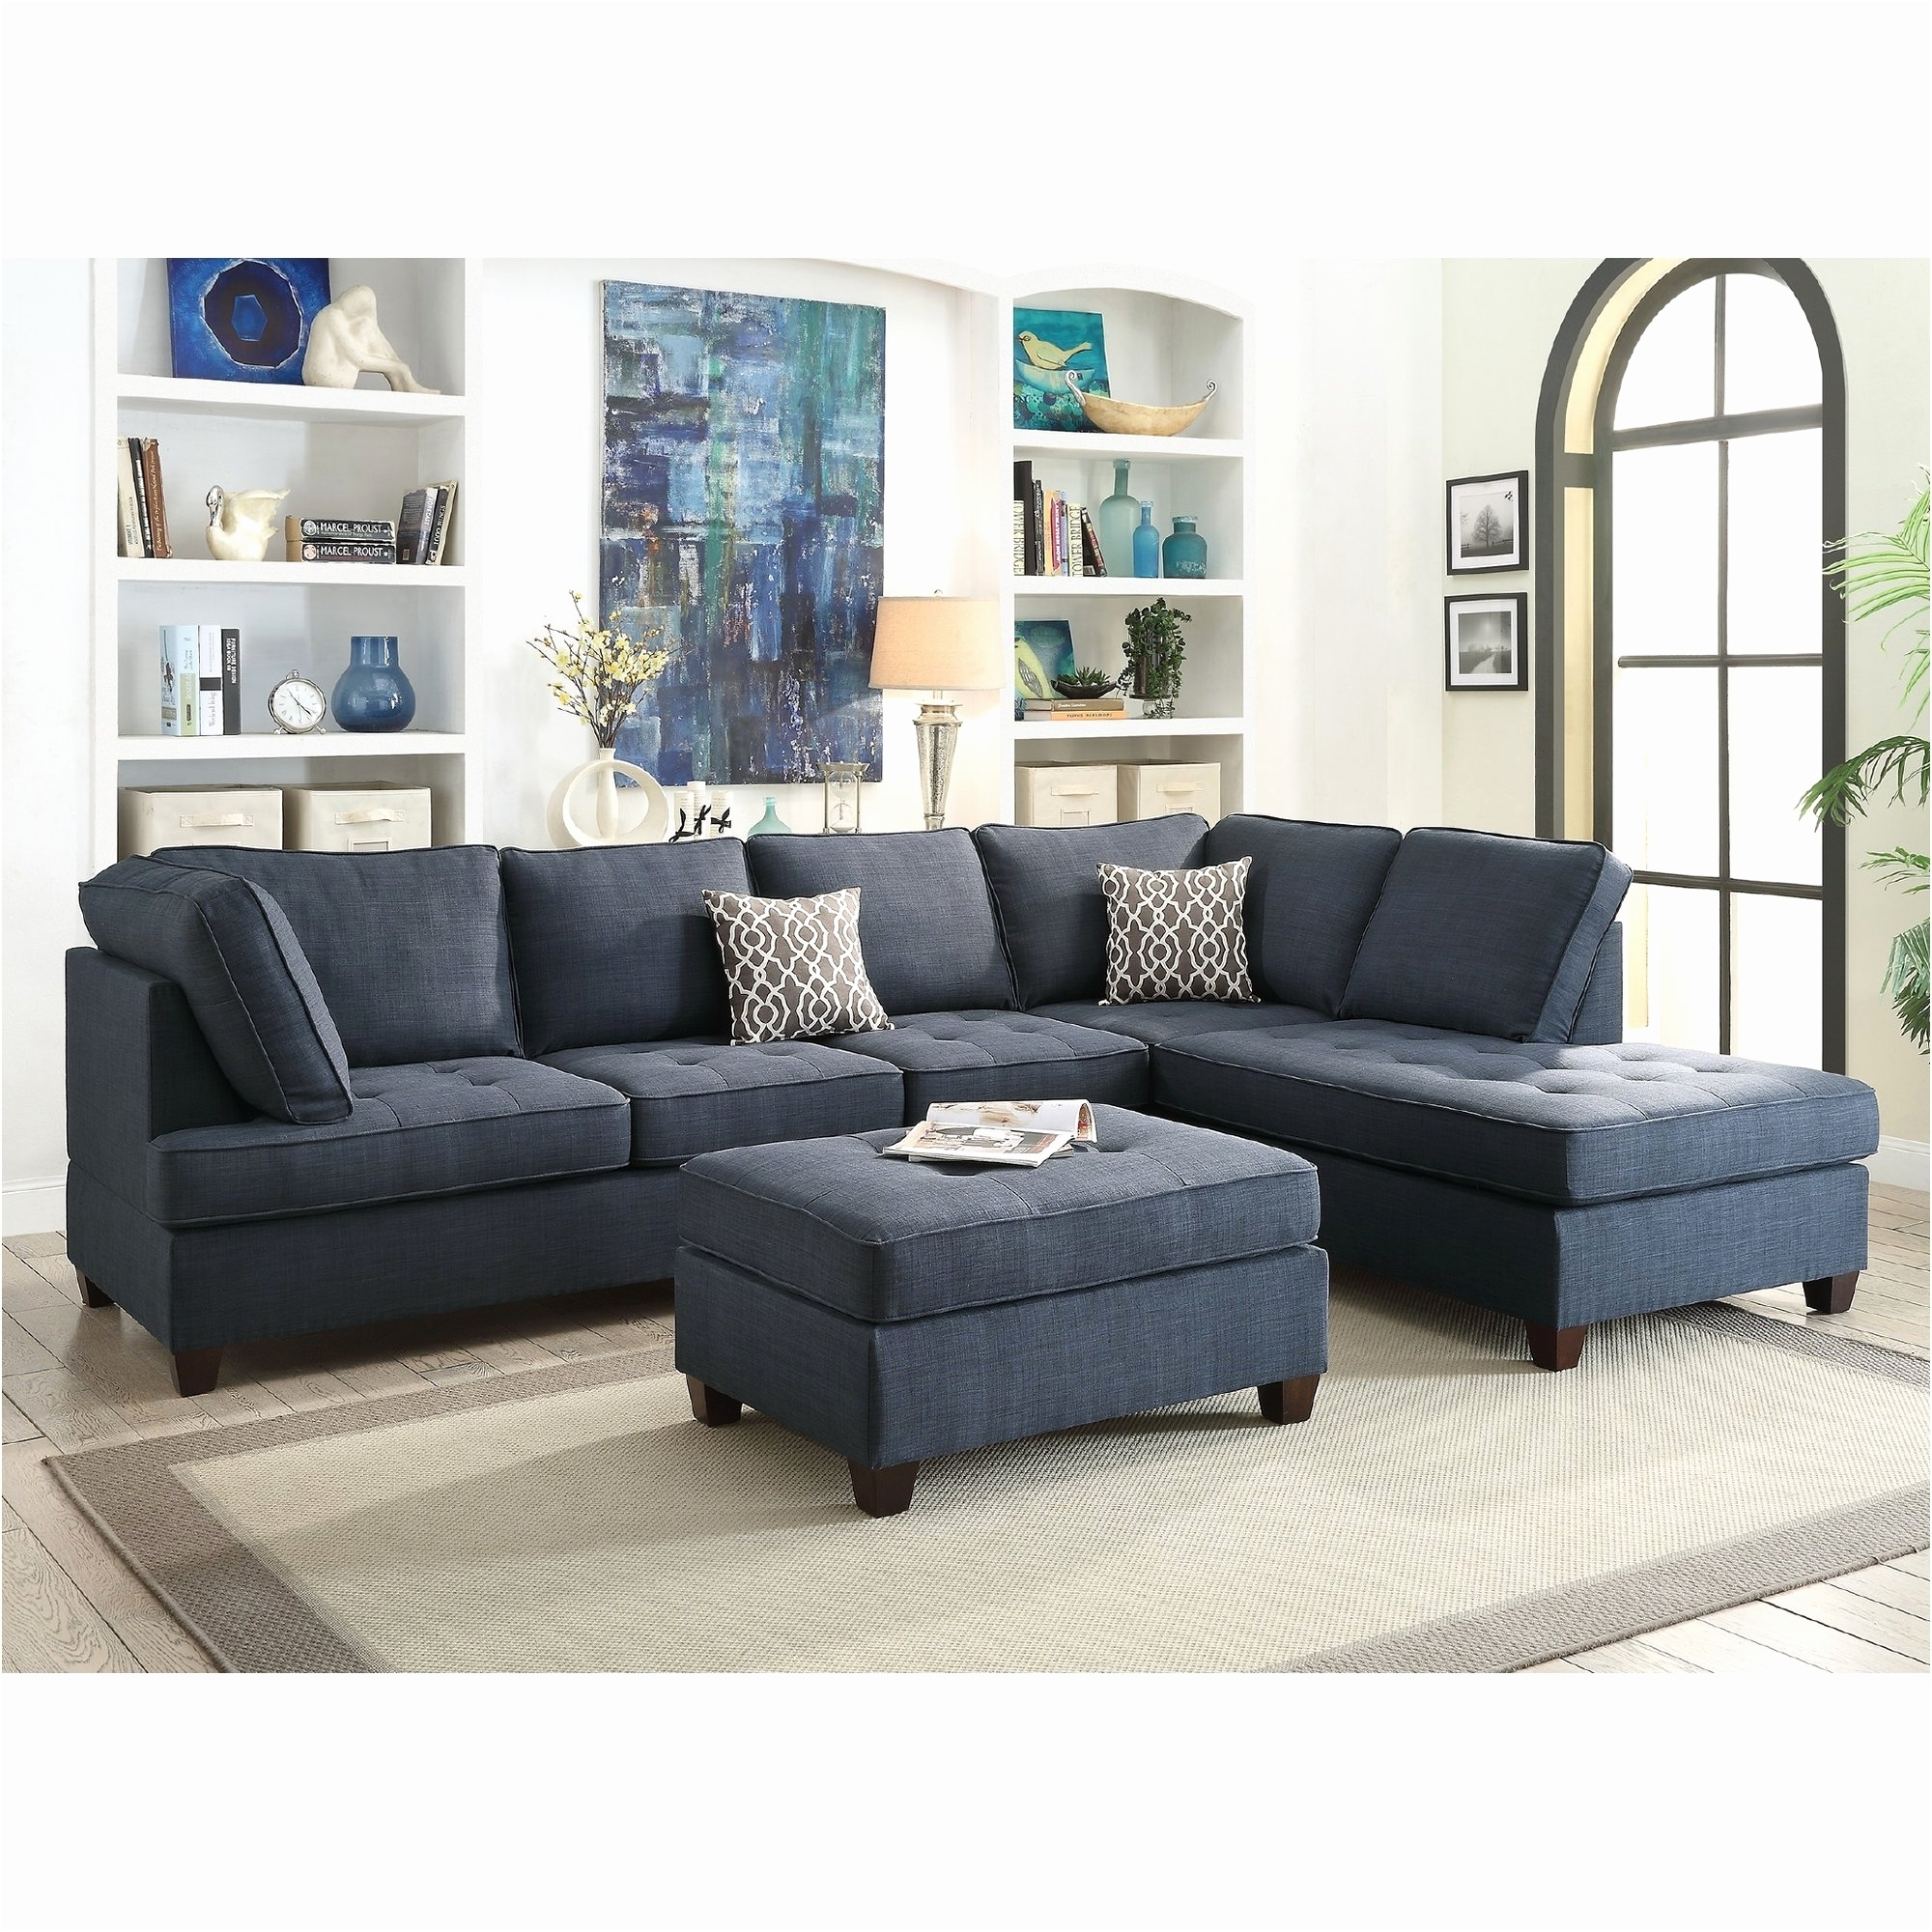 Leather Sectional Sofa Jacksonville Fl (View 14 of 15)